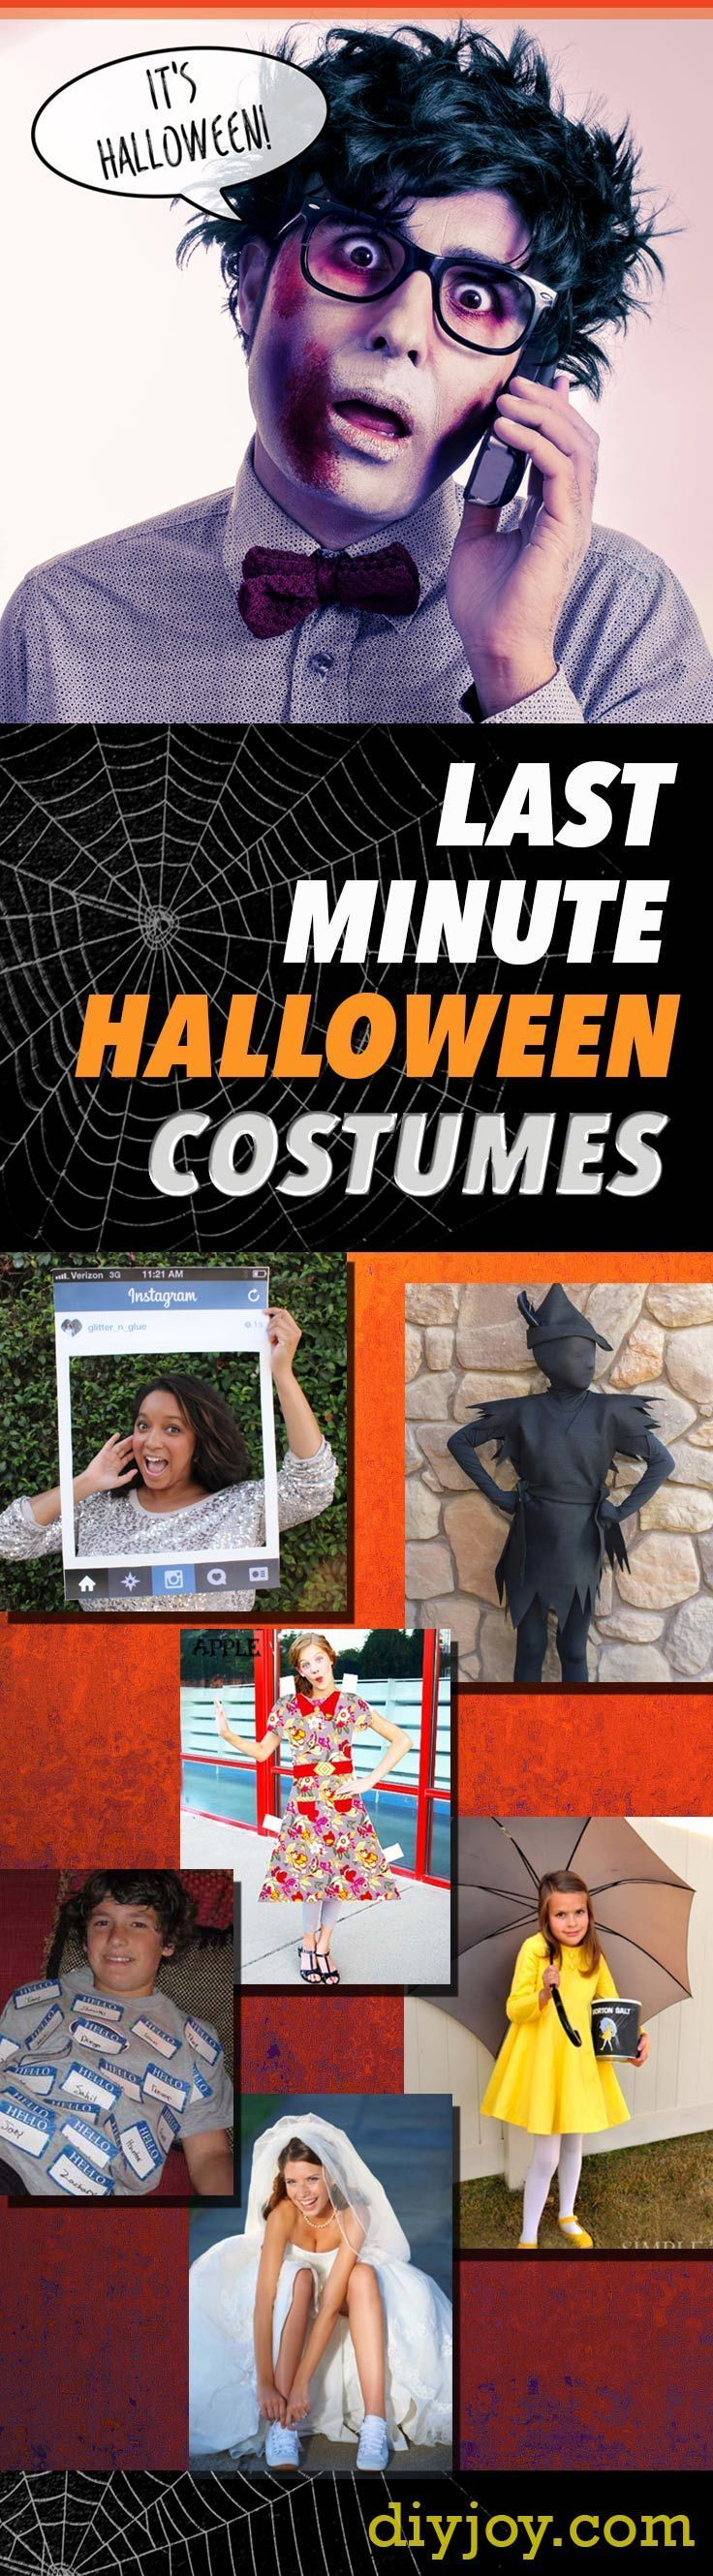 9 best cute costumes images on pinterest carnivals cheap 36 last minute diy halloween costumes halloween ideas for mendiy solutioingenieria Gallery